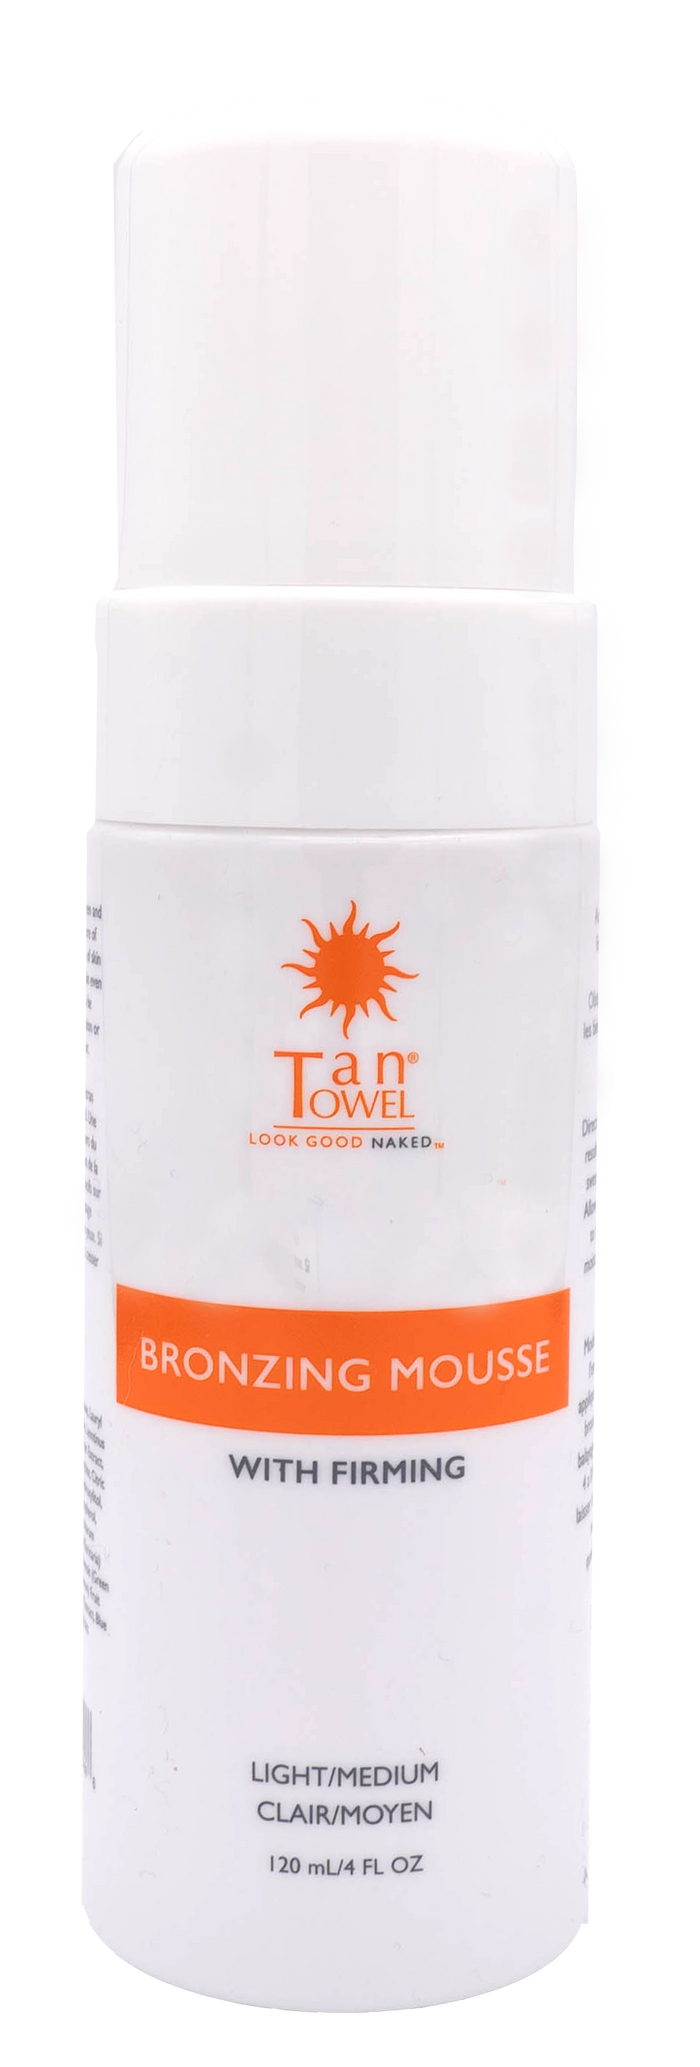 Bronzing Mousse With Firming - Self Tanning | TanTowel USA